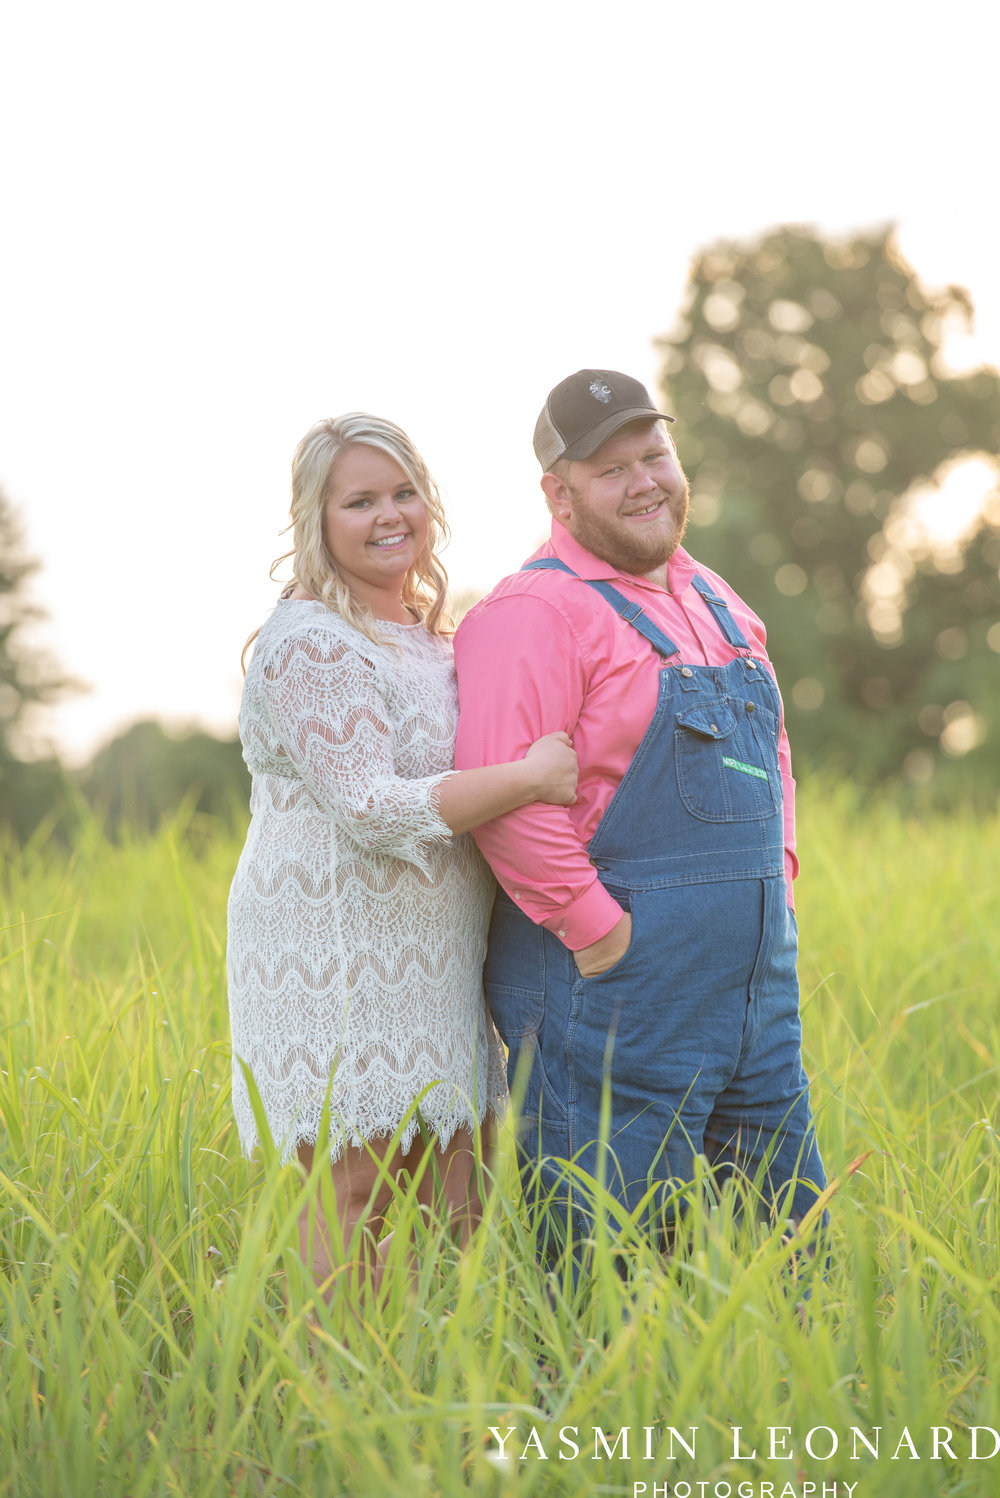 NC Engaged - Wallburg Engagement - Country Engagement Session - Barn Engagement Session - Outdoor Engagement Session - Farmer Engagement Session - Engagement Session with Overalls and Boots-5.jpg